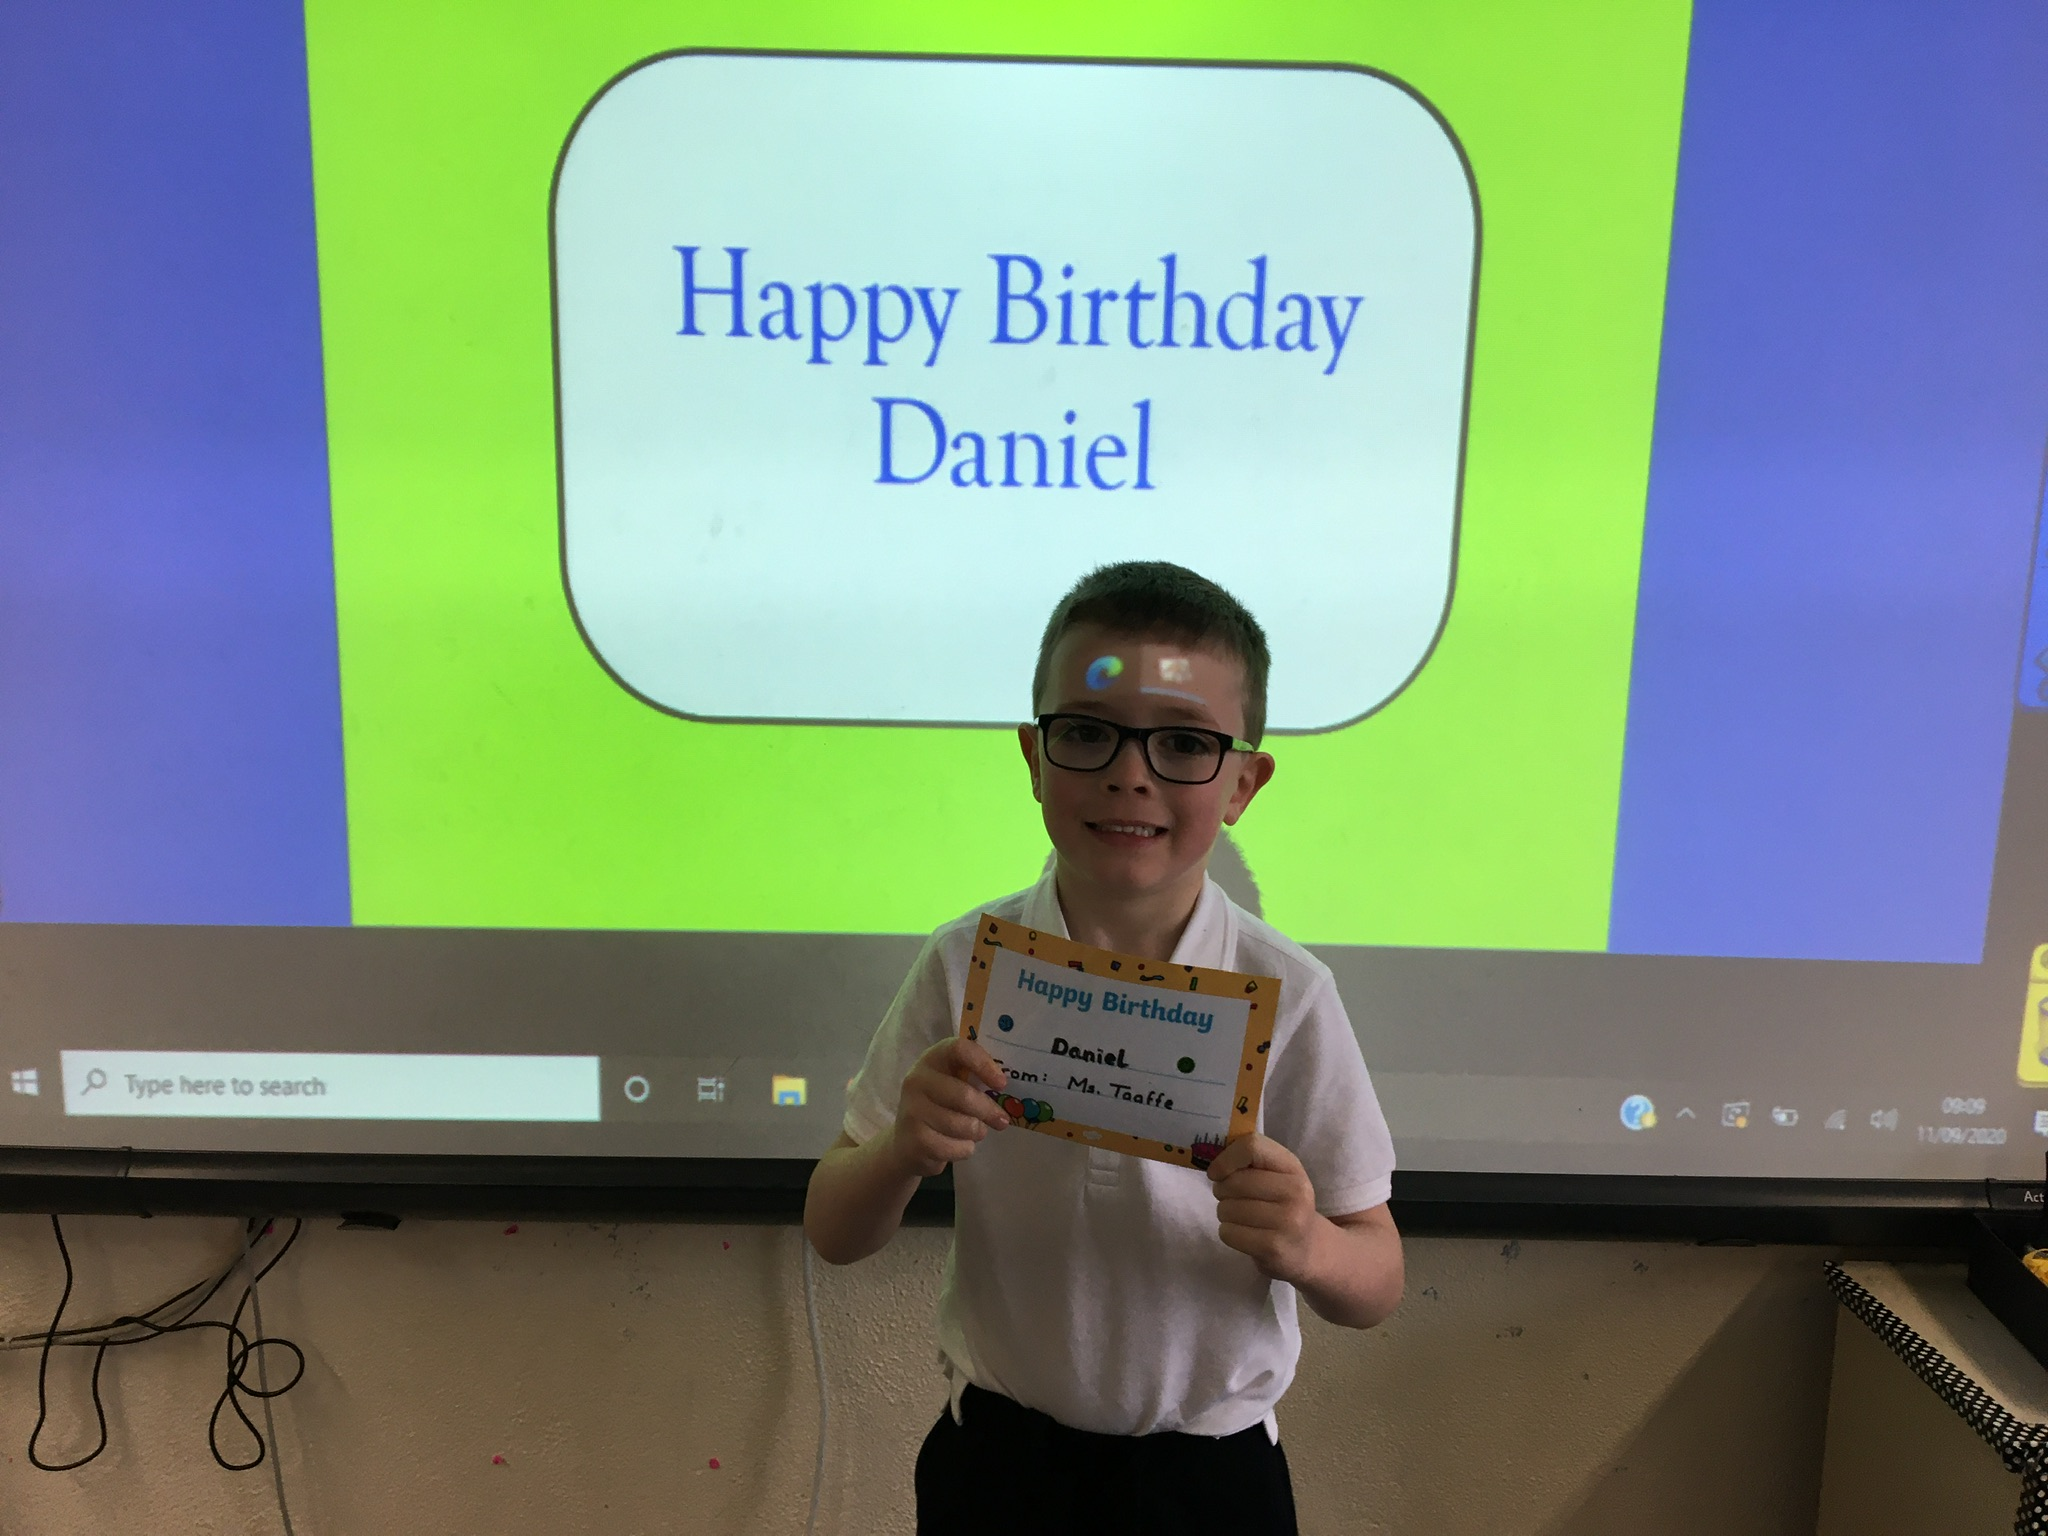 Happy Birthday Daniel.